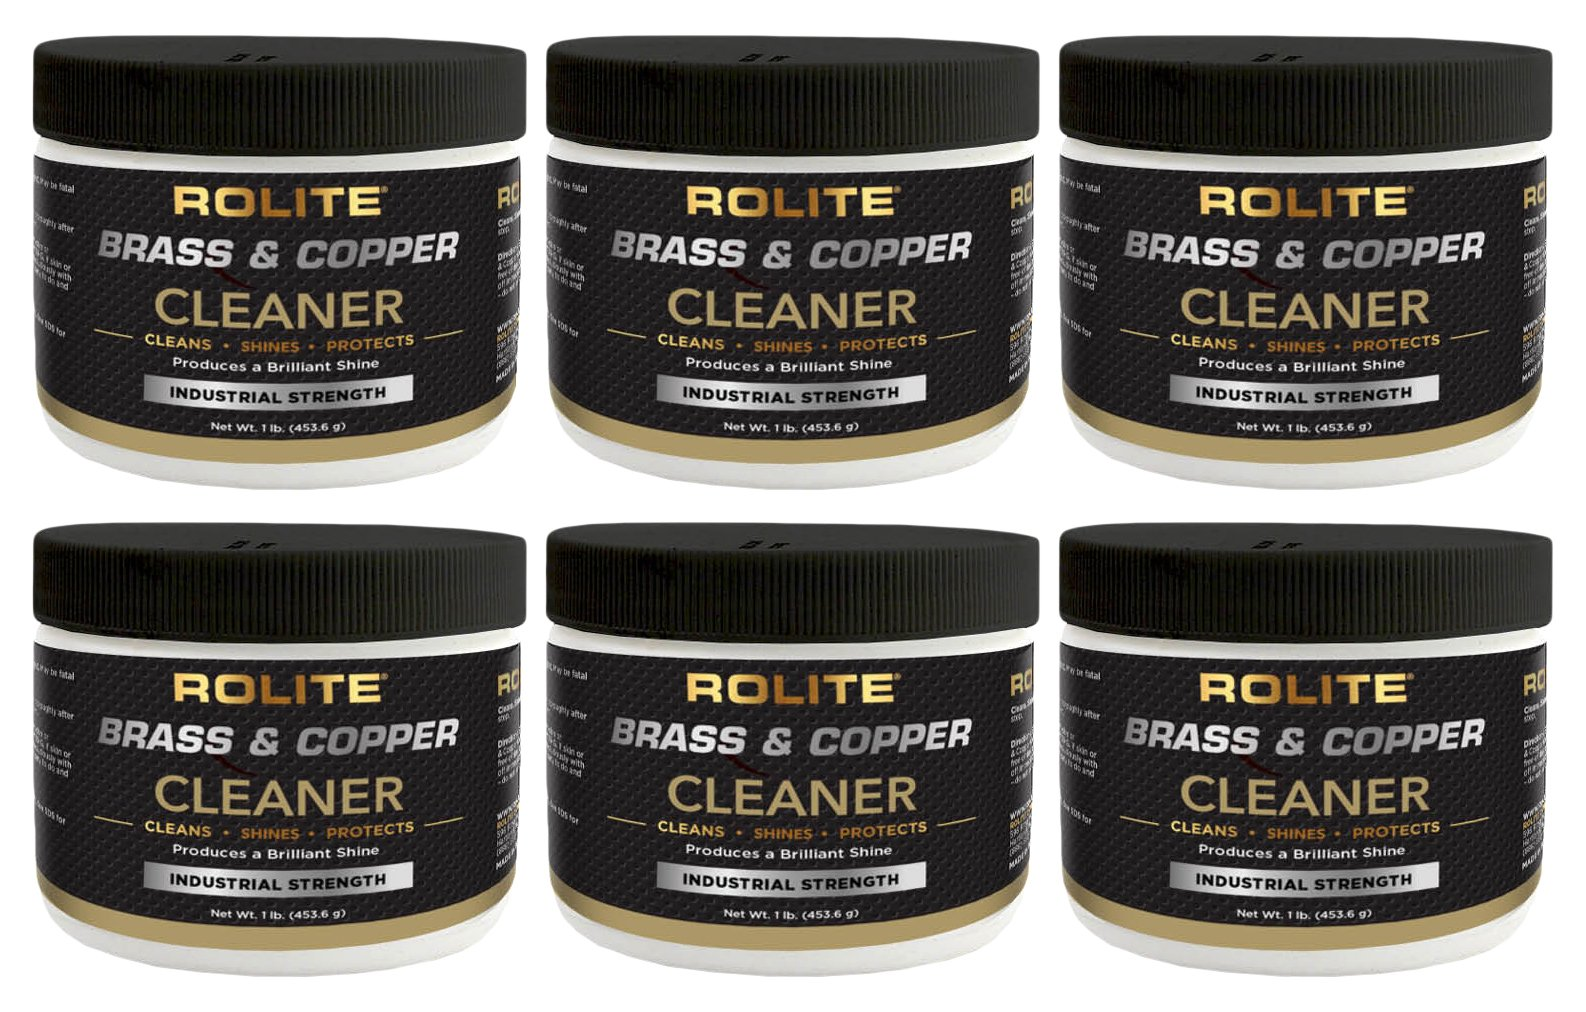 Rolite Brass & Copper Cleaner (1lb) Instant Cleaning & Tarnish Removal on Railings, Elevators, Fixtures, Hotels, Cruise Ships, Buildings 6 Pack